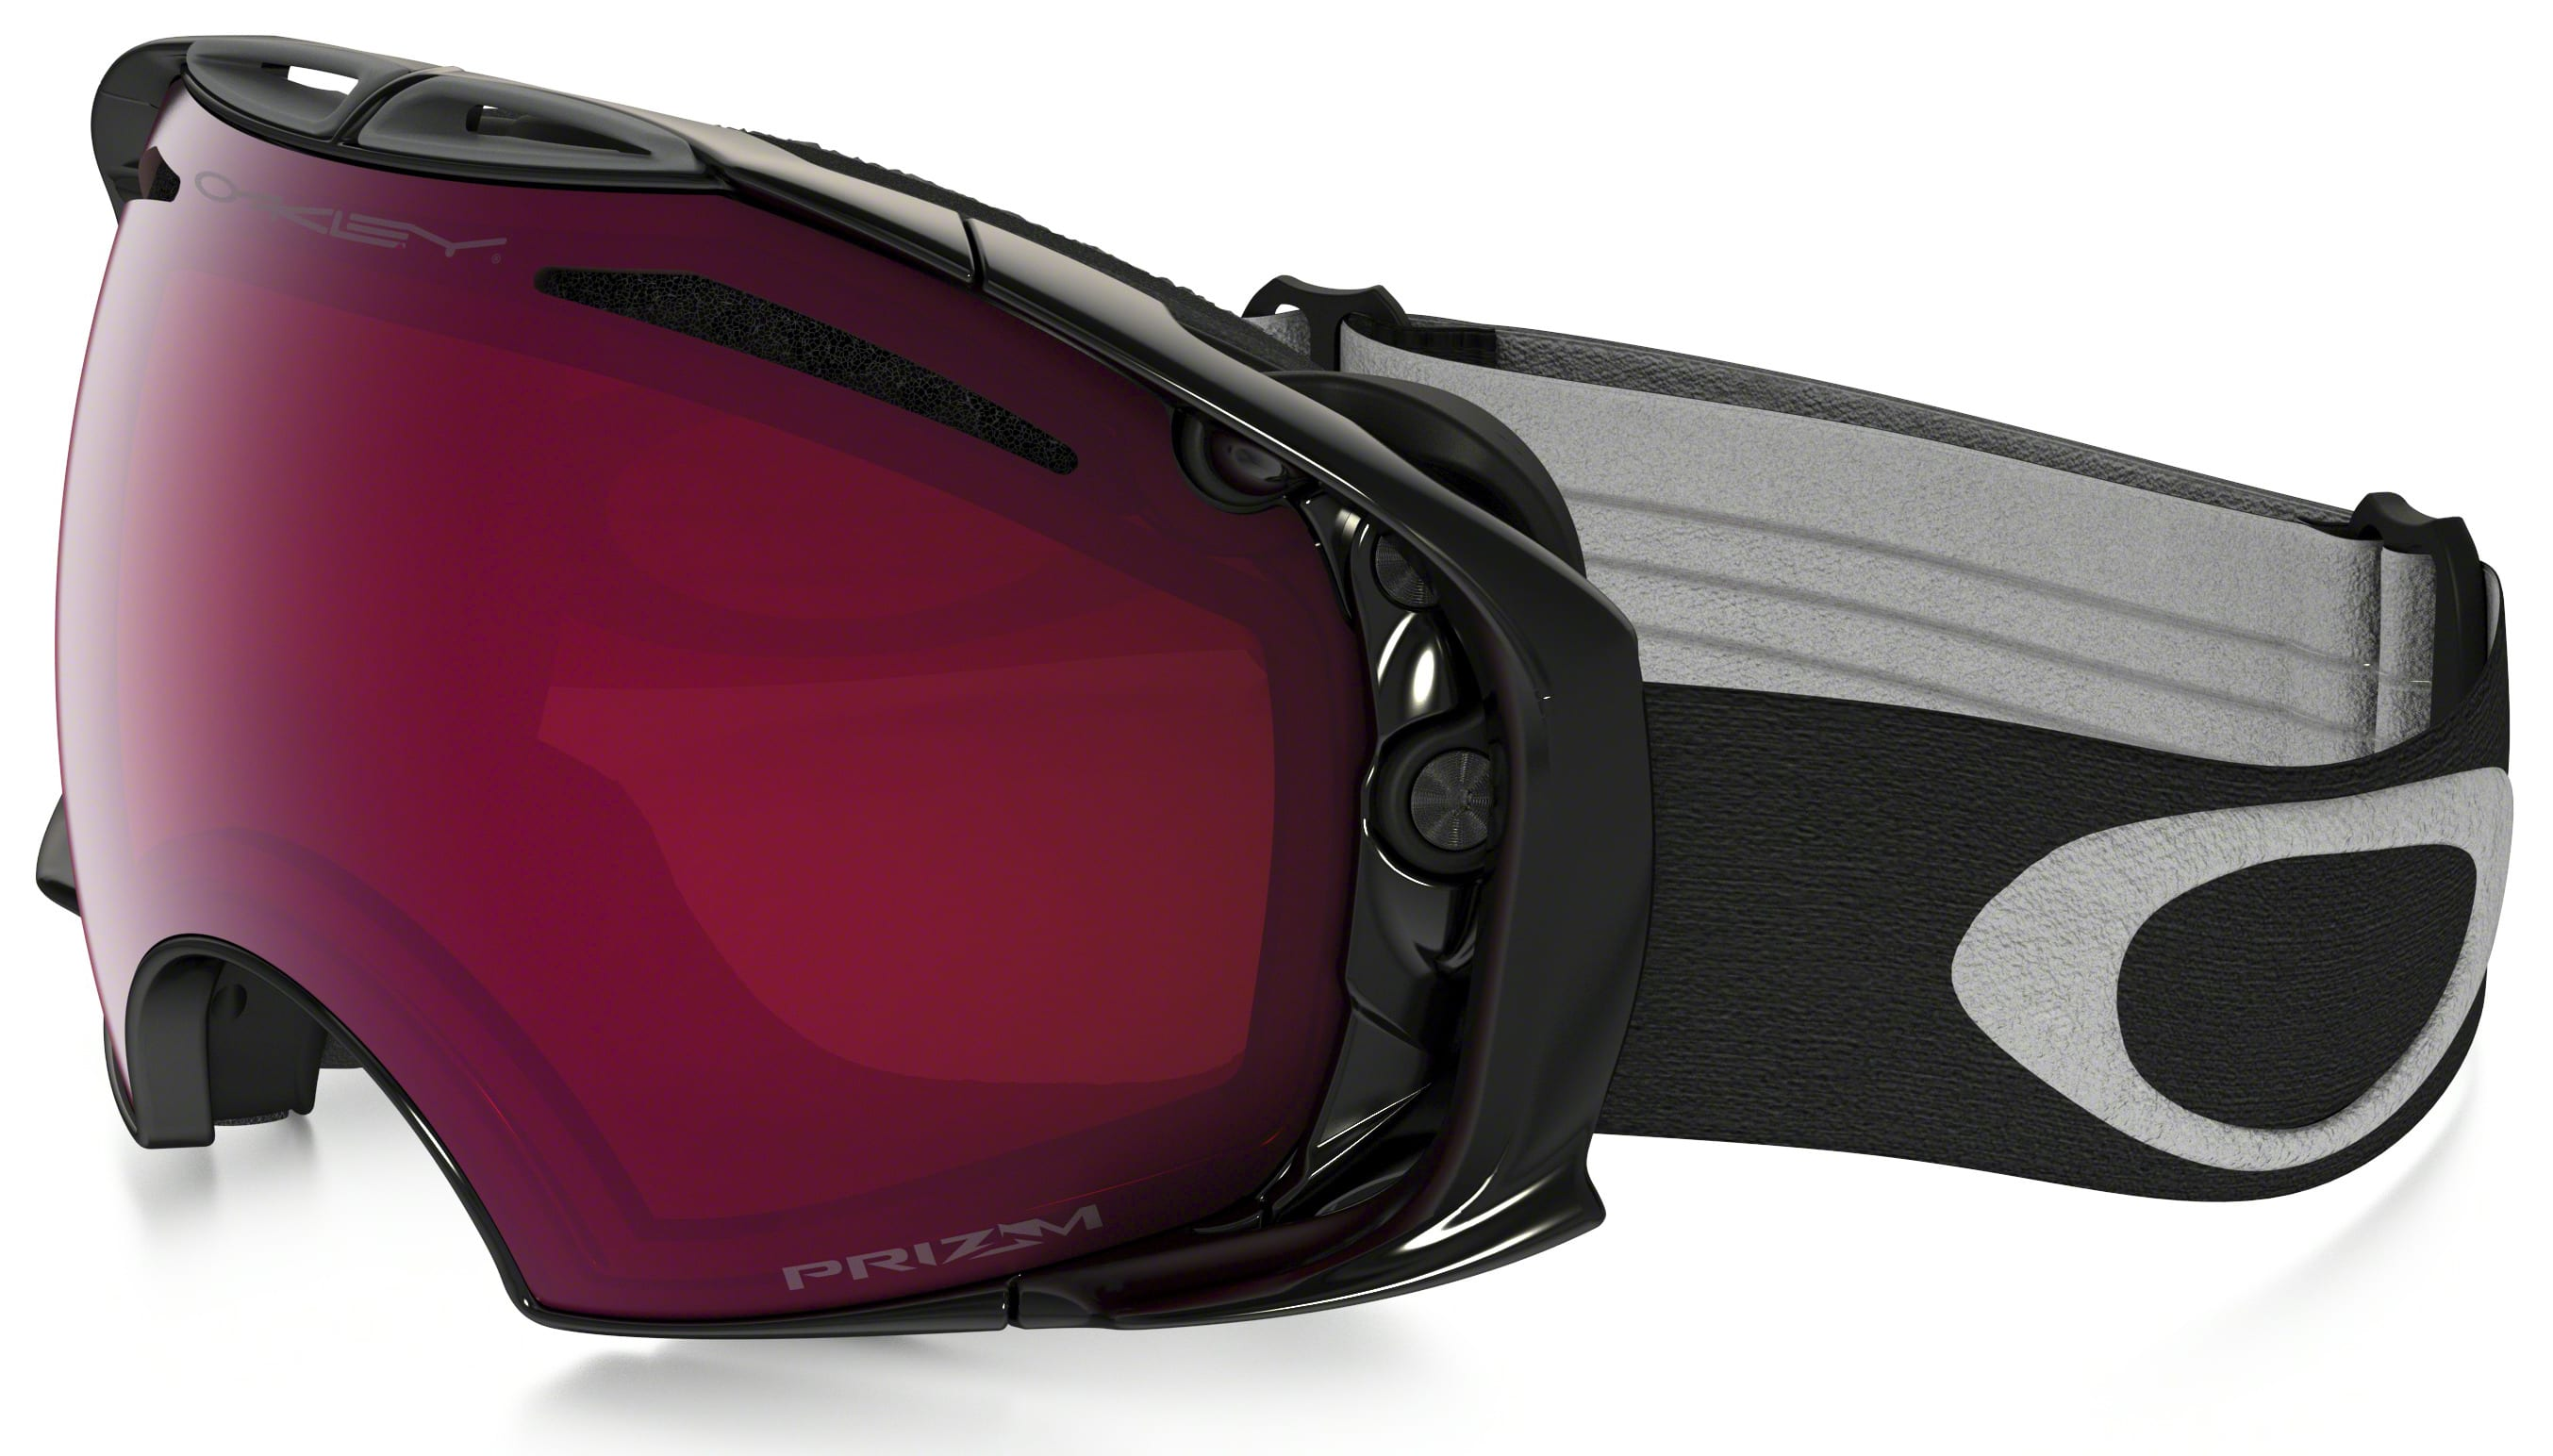 sale on oakley goggles